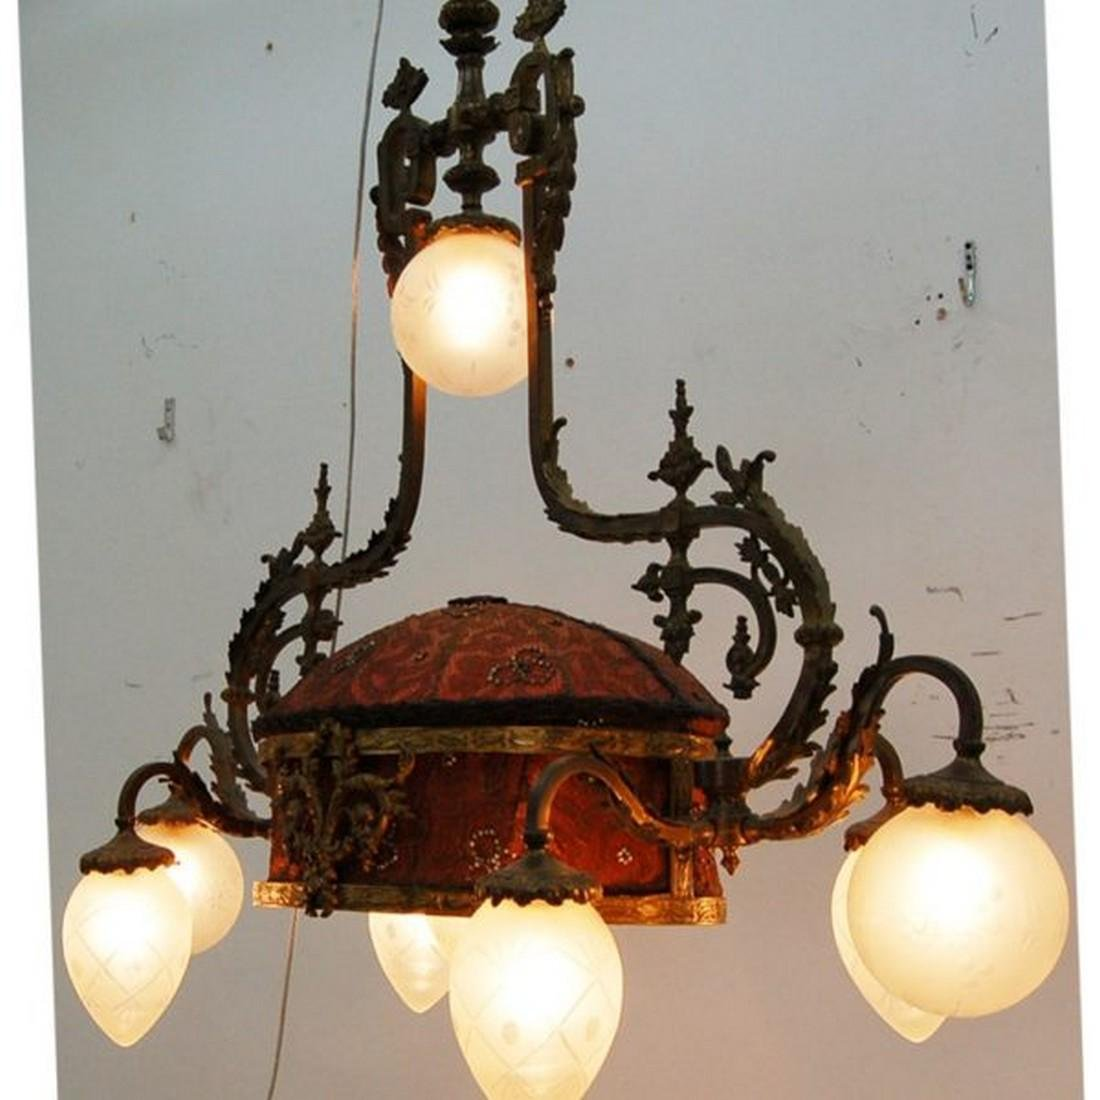 Antique 19th C. French Rococo Chandelier - 2